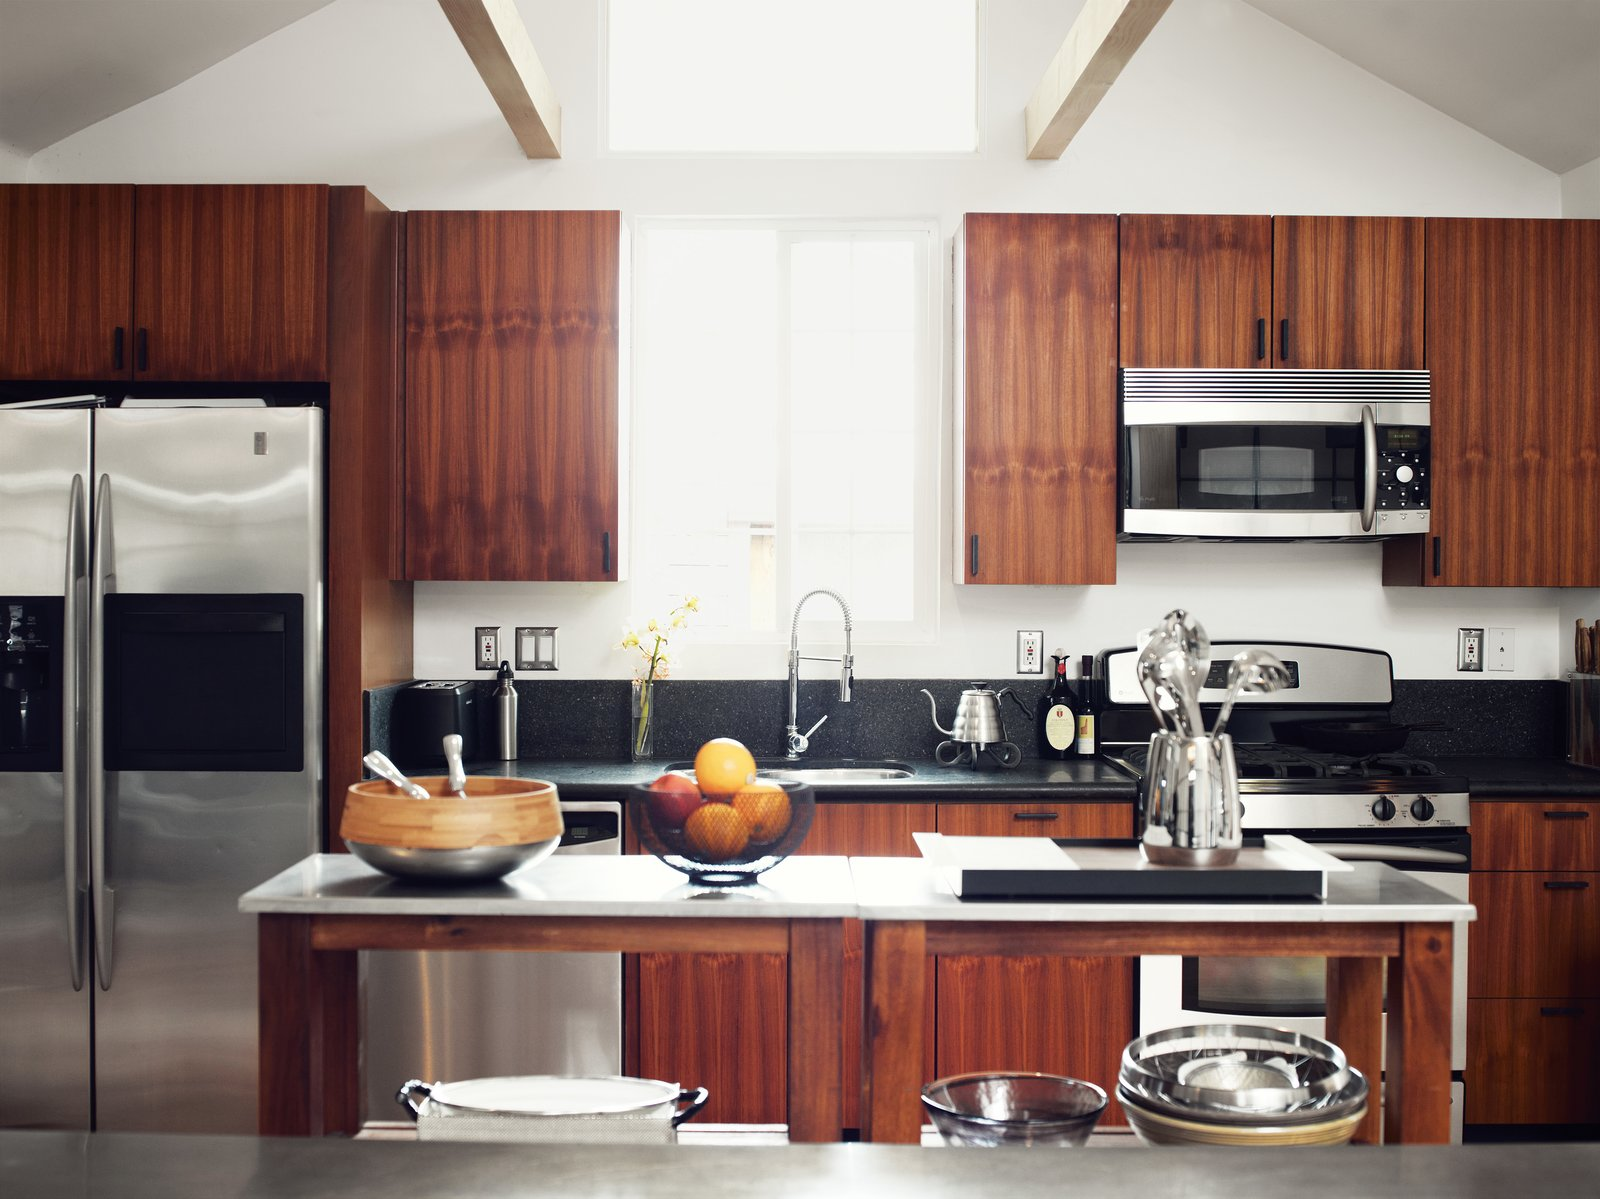 He worked with Kartheiser's existing appliances in the kitchen, trading the old cabinetry for new teak. Tagged: Kitchen, Wood Cabinet, Granite Counter, Undermount Sink, Refrigerator, and Microwave.  Photo 7 of 14 in Inspired Indoor Teak Looks from The Tiny Hollywood Home of Mad Men's Vincent Kartheiser